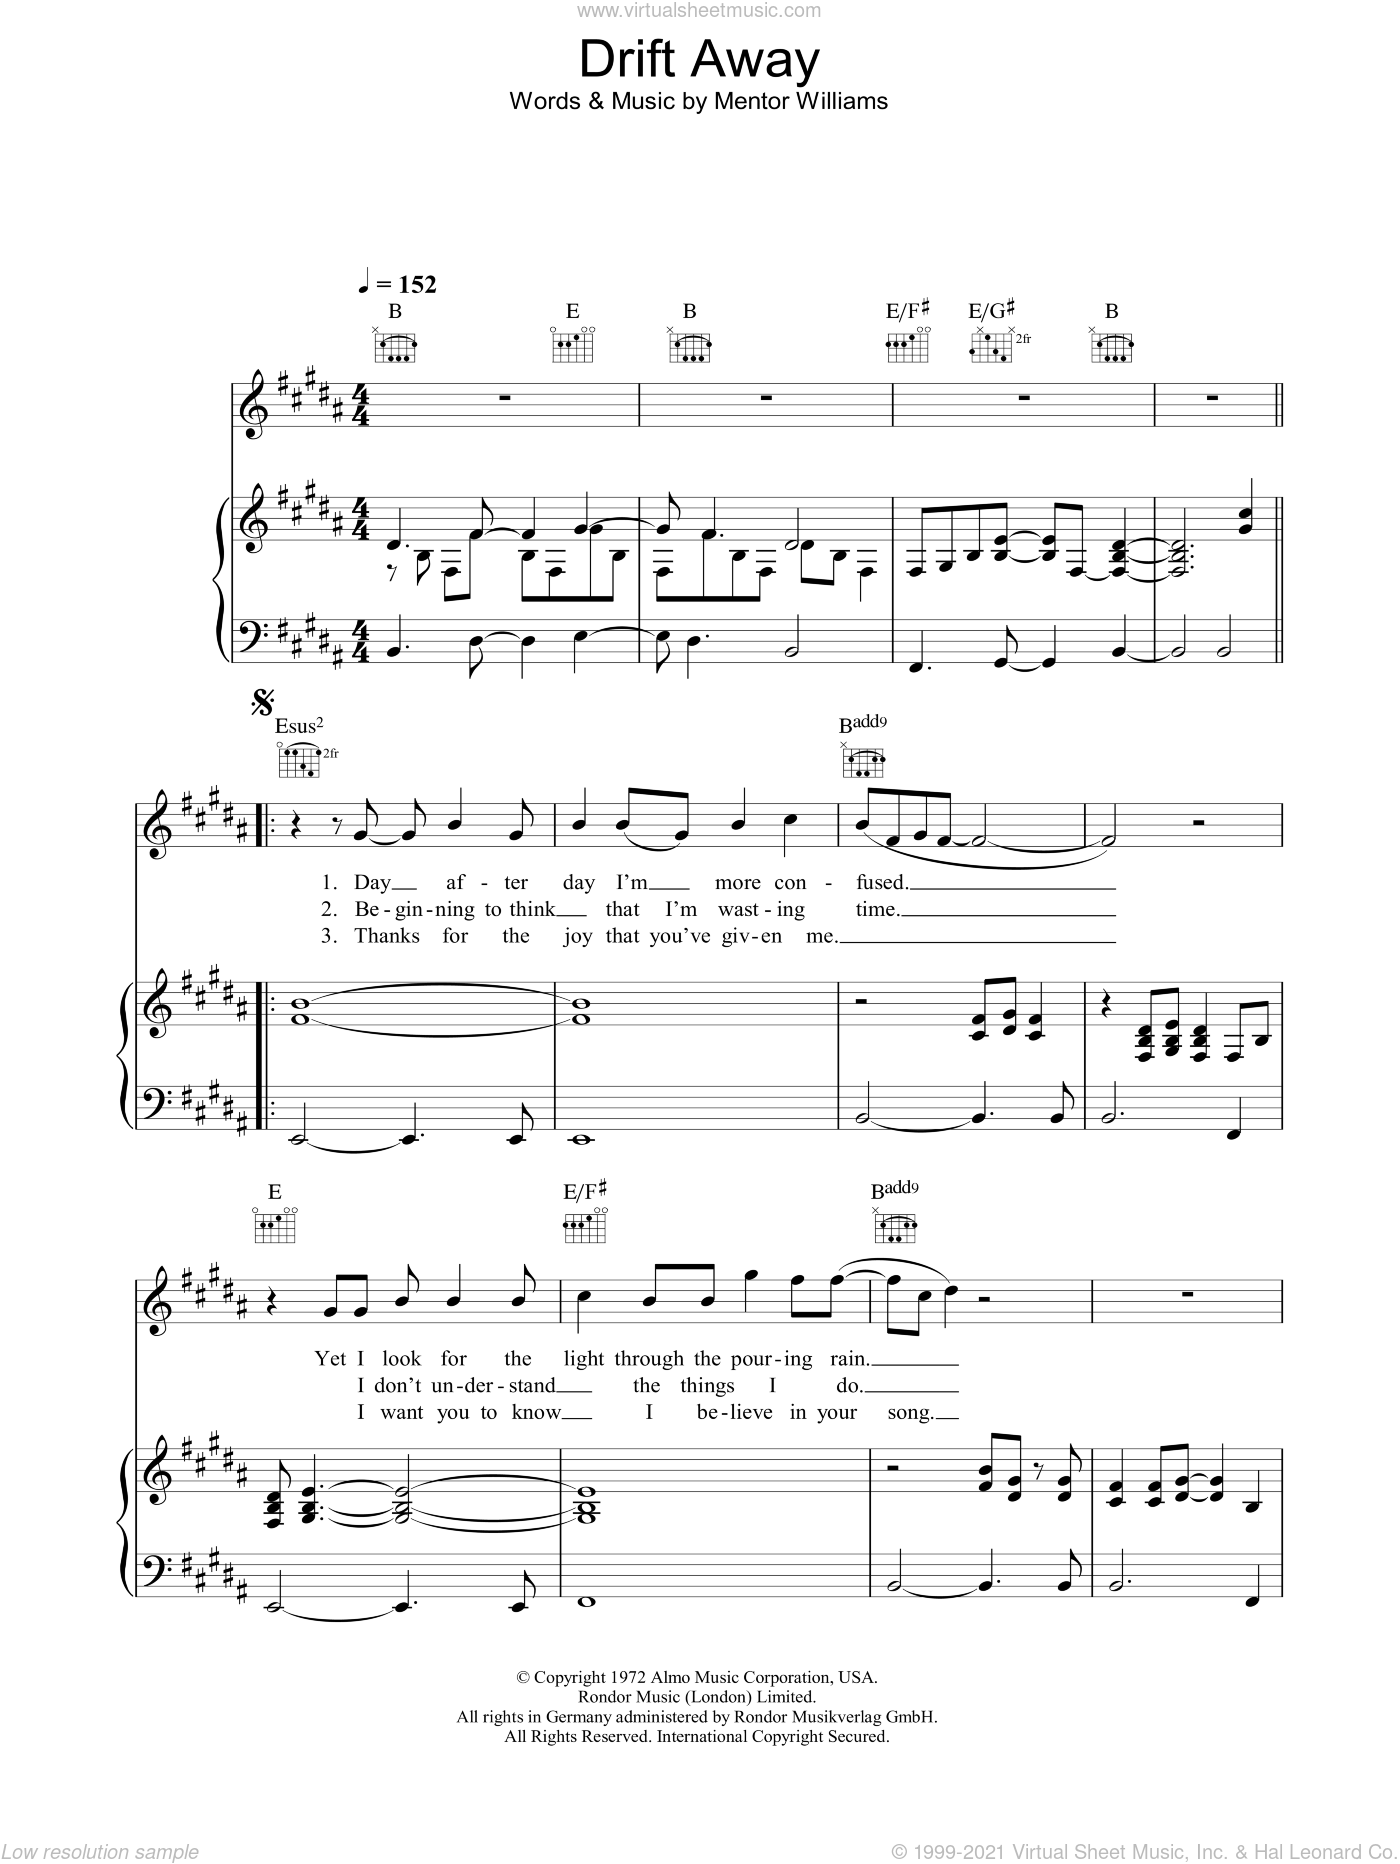 Drift Away sheet music for voice, piano or guitar by Dobie Gray and Mentor Williams. Score Image Preview.